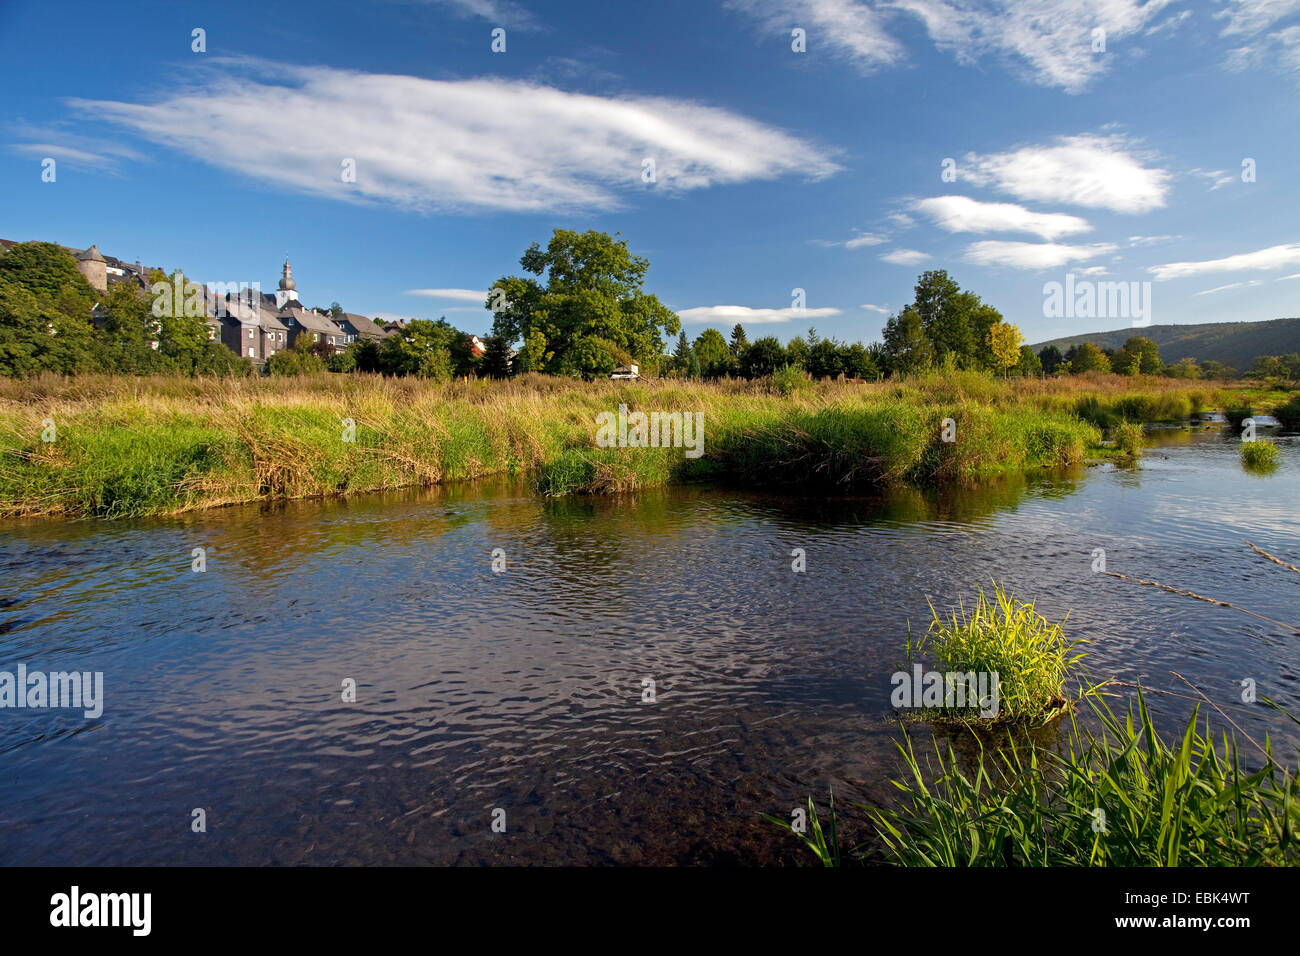 river Ruhr crossing the city, Germany, North Rhine-Westphalia, Hochsauerlandkreis, Arnsberg - Stock Image